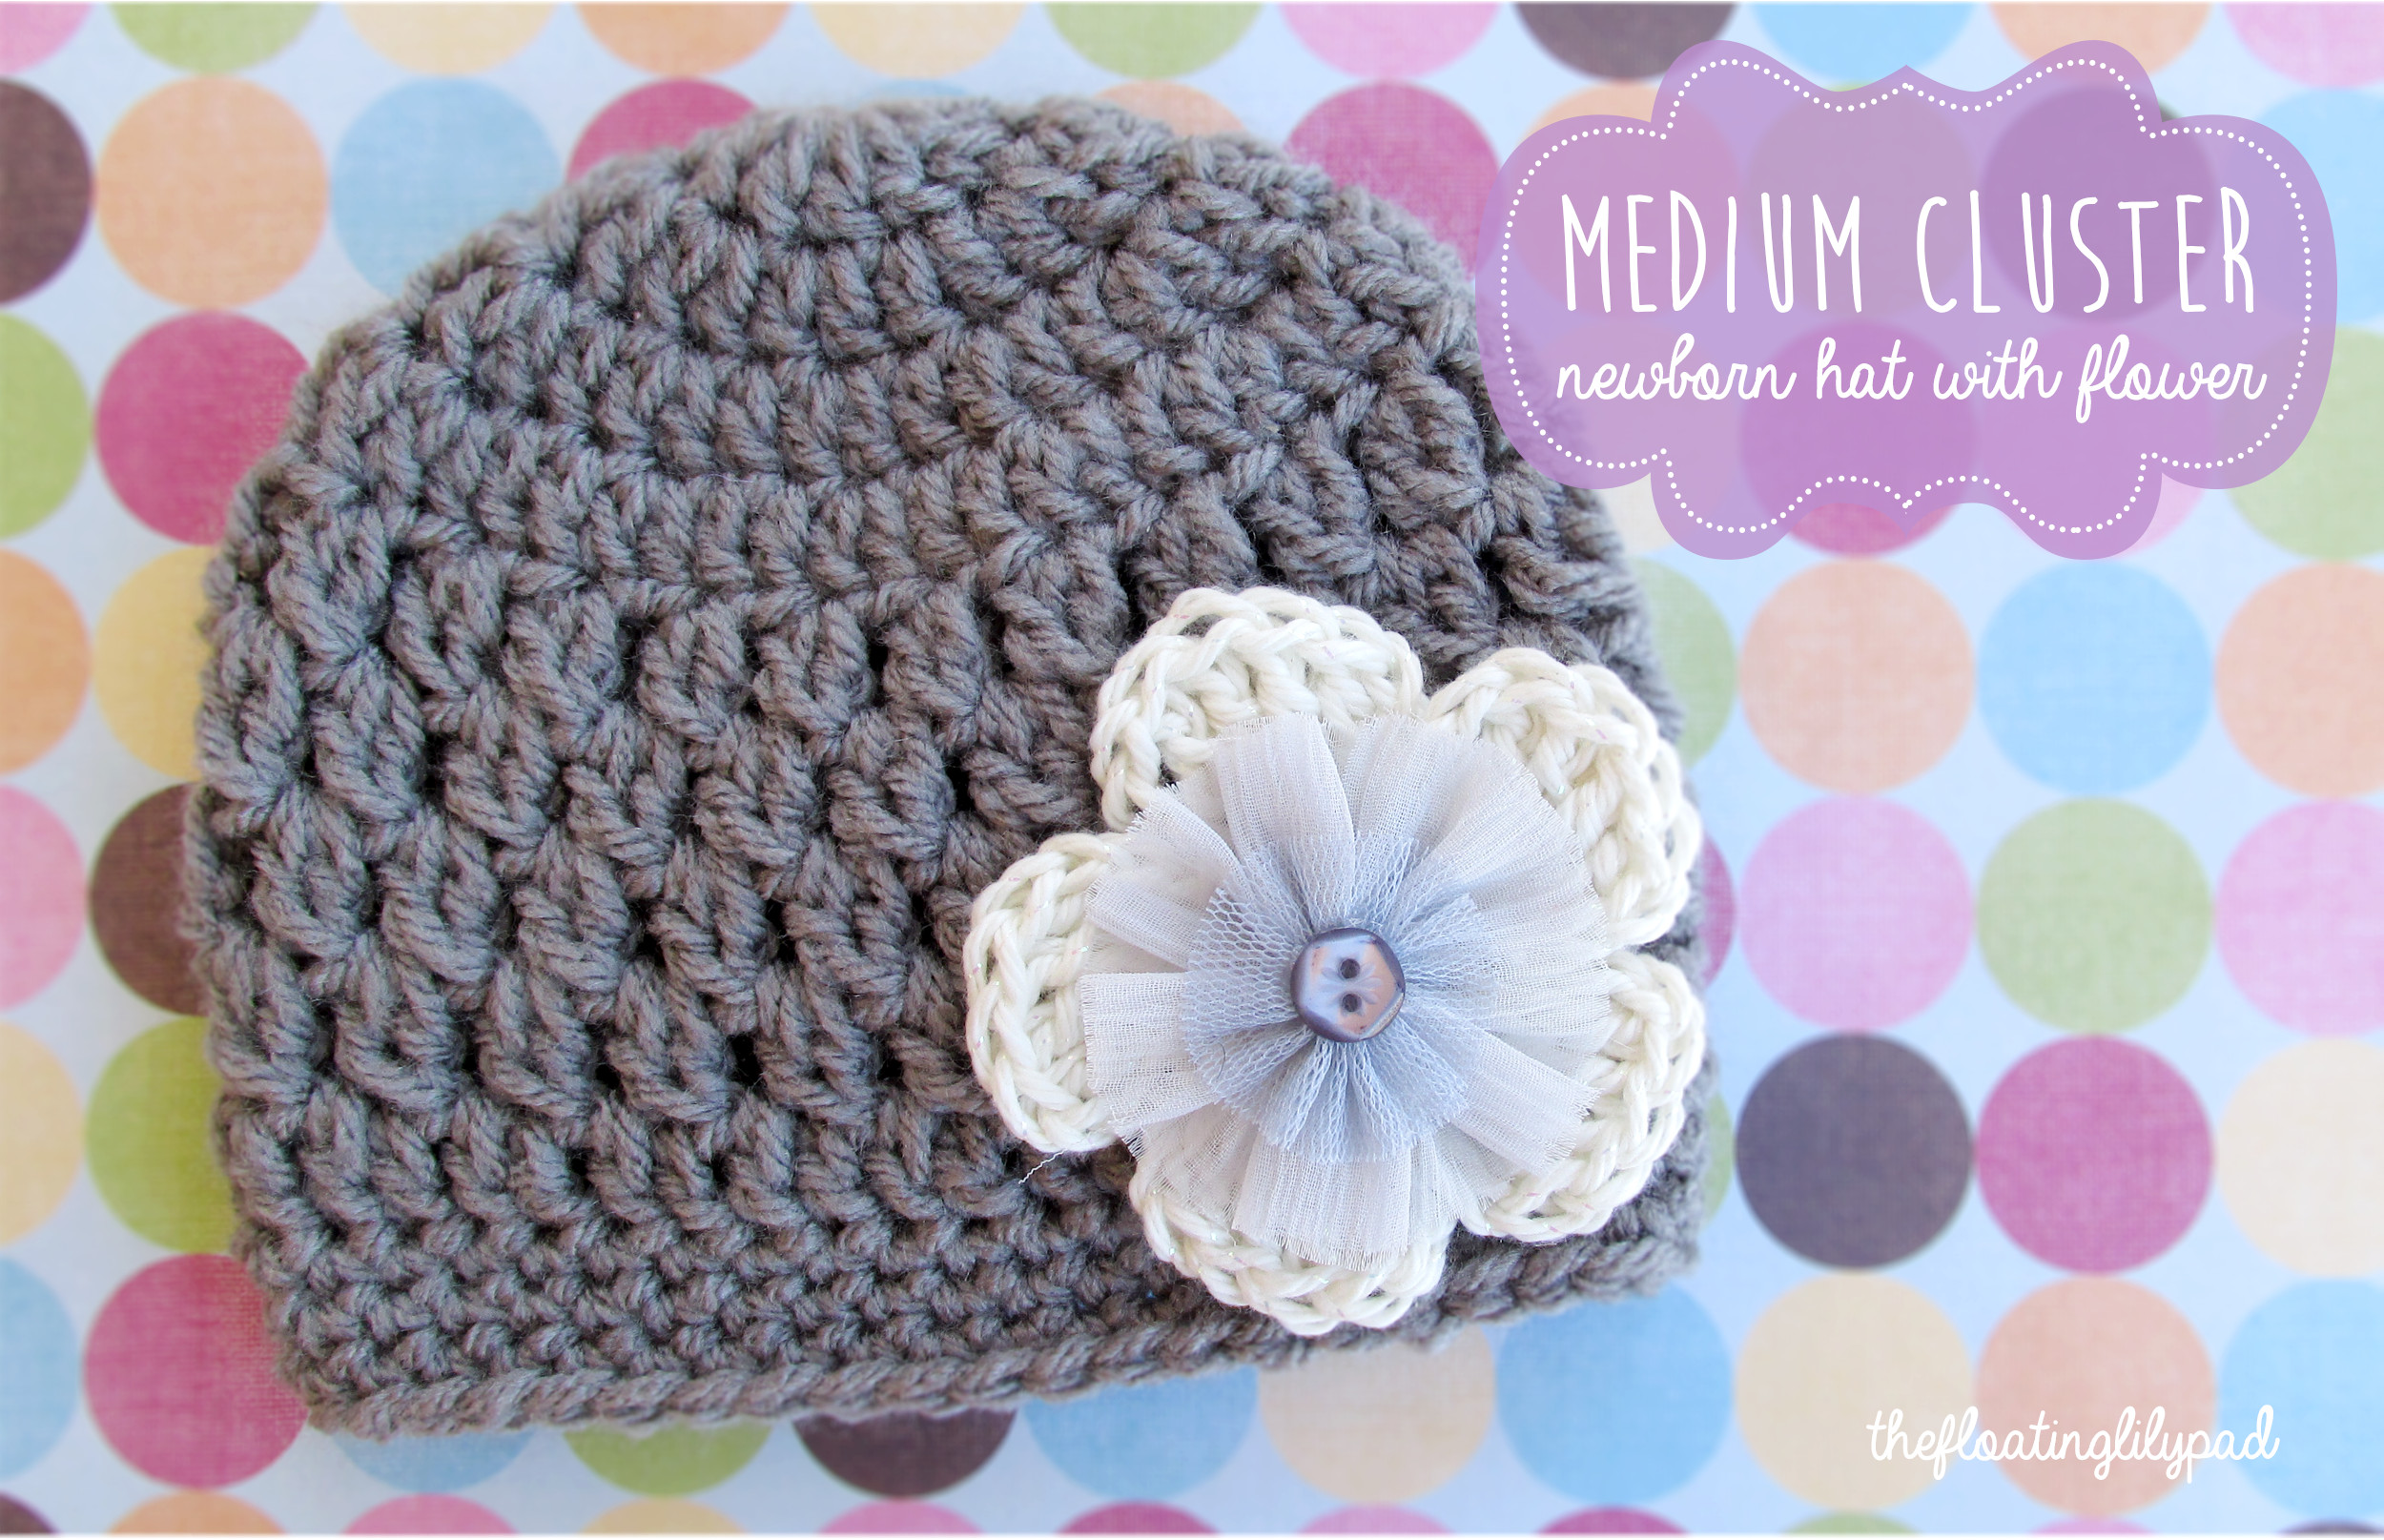 Inspirational Medium Cluster Crochet Baby Hat with Flower Free Pattern Crochet Flowers for Hats Free Patterns Of Luxury 25 Best Ideas About Crochet Hats On Pinterest Crochet Flowers for Hats Free Patterns